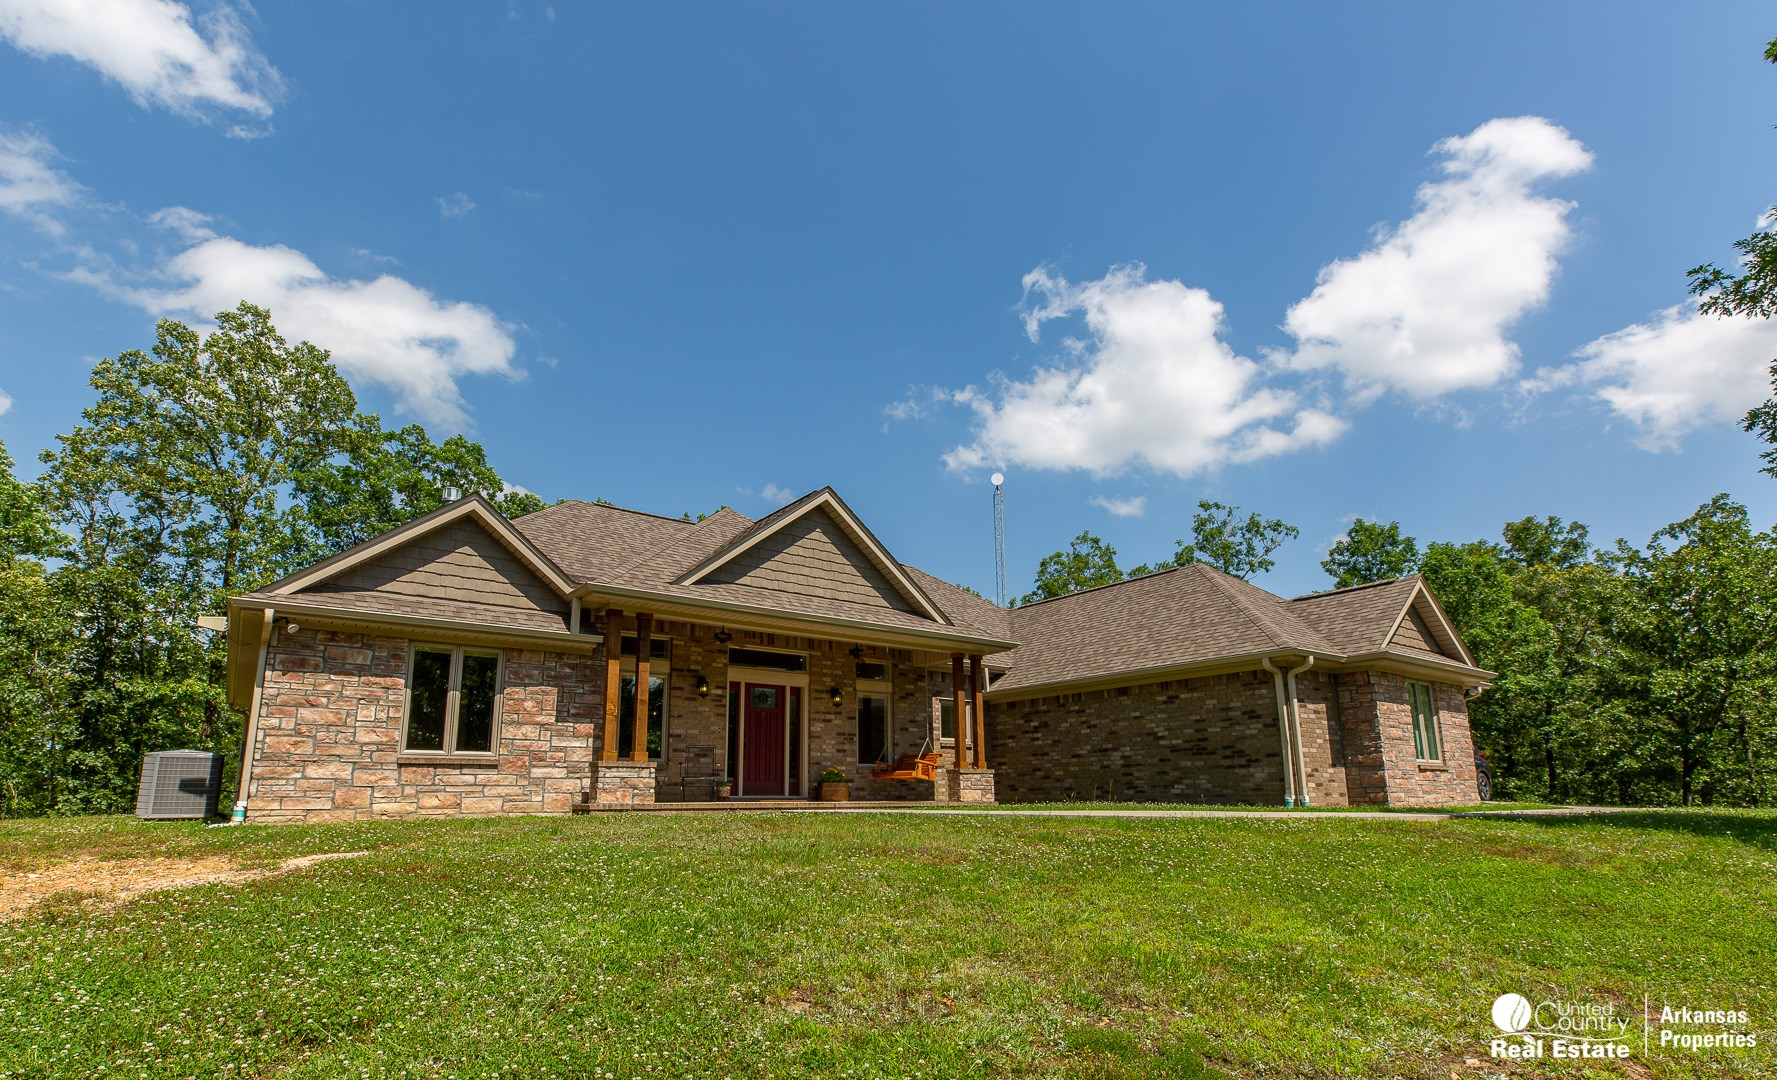 Like New Home w/ Acreage for Sale in Arkansas